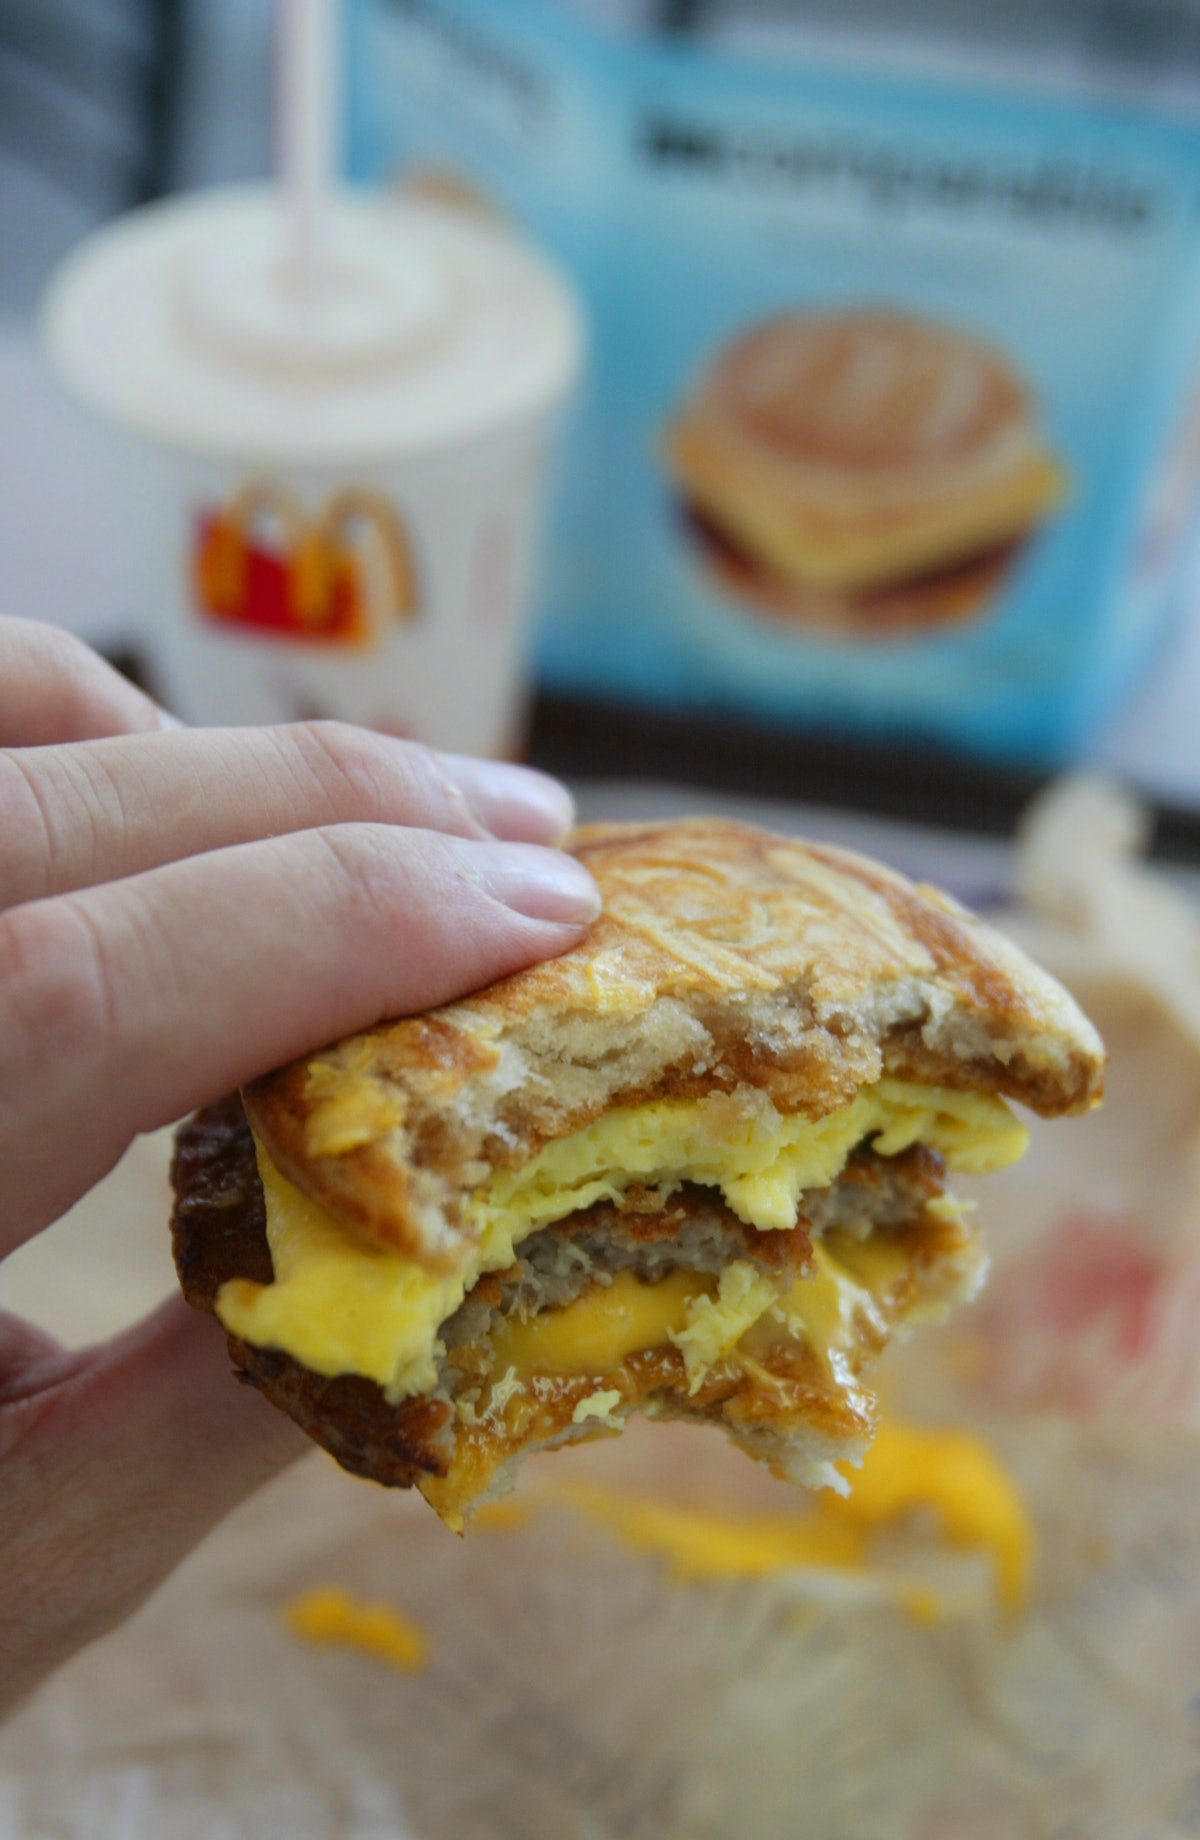 McDonald's 2 For $4 Mix & Match Deal For 2020 includes the Sausage McMuffin.